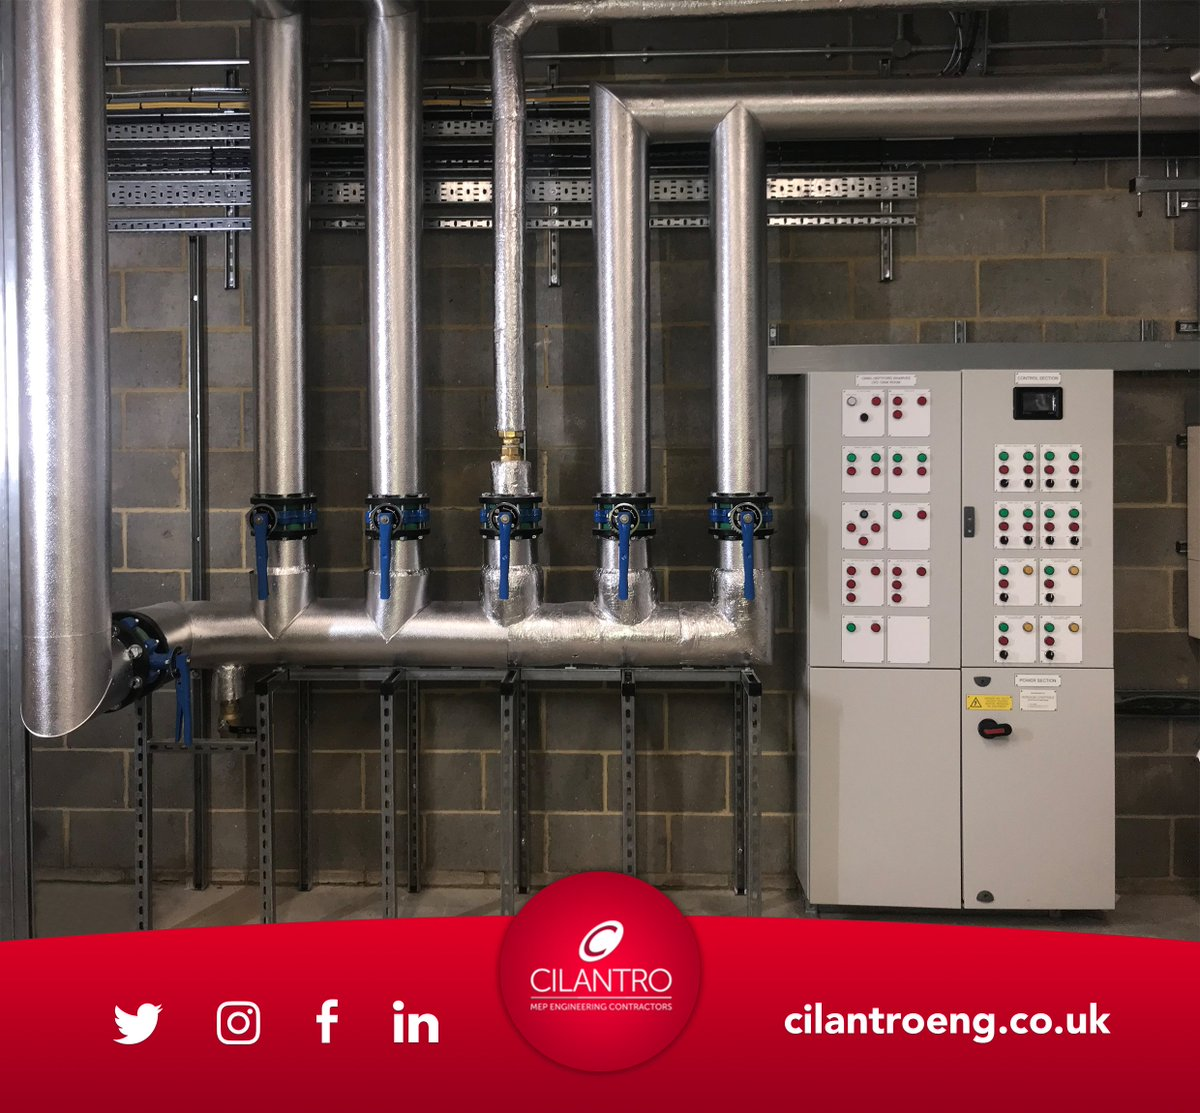 Work in progress: Deptford Timberyard project.  Boosted Cold Water Pipes within tank room and the BMS Panel installed by Cilantro at Deptford. Great work team!  #plumbing #accreditation #mepdesign #electrical #mechanical #workinprogress #installed #cilantroengineering #deptford